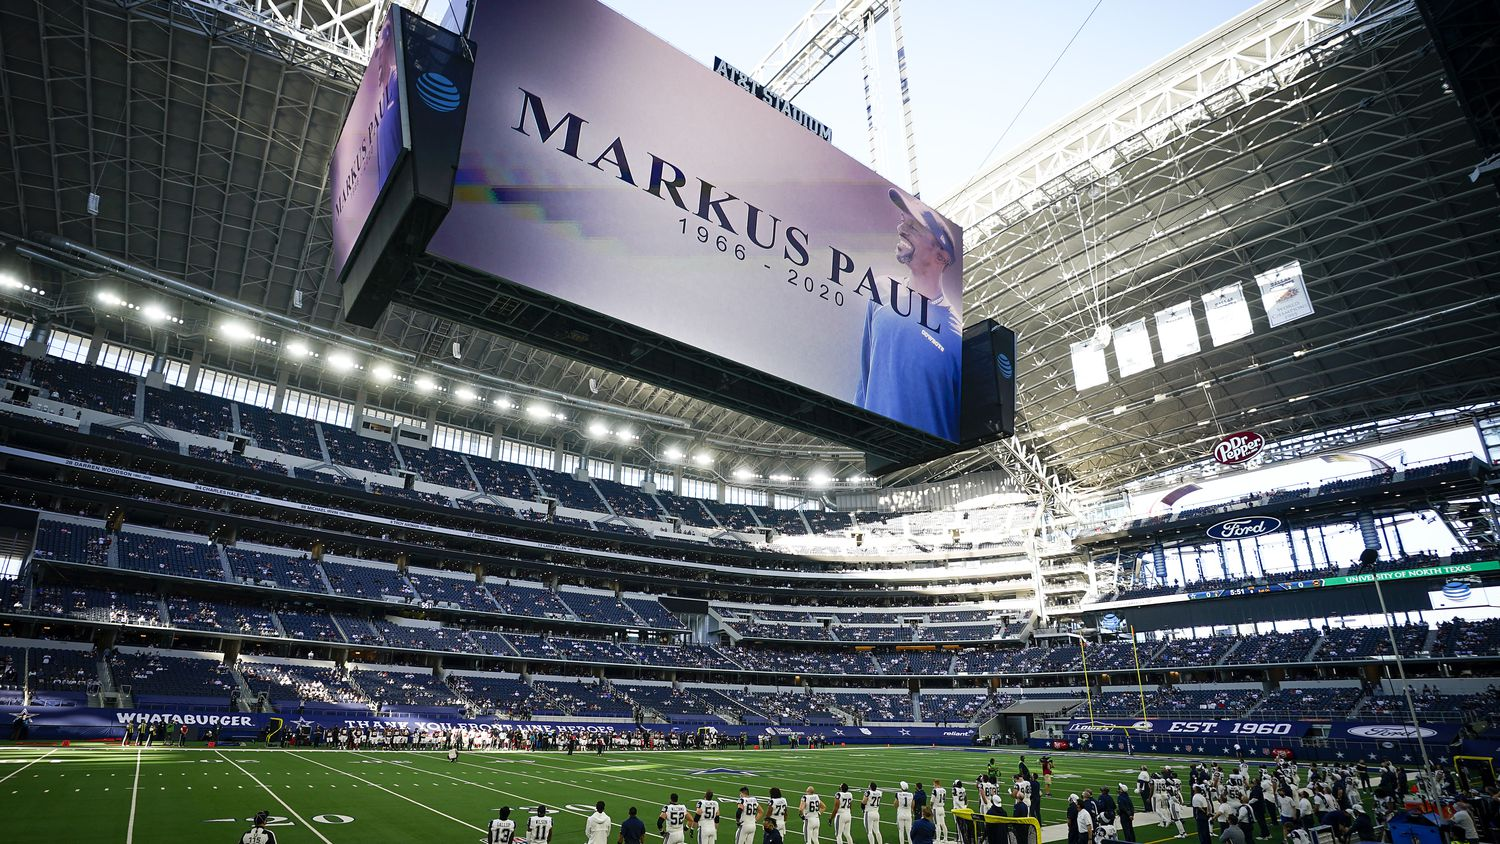 Dallas Cowboys players stand for a moment of silence honoring strength and conditioning coach Markus Paul, who died Wednesday evening after having a medical emergency during Tuesday's practice, before an NFL football game against the Washington Football Team at AT&T Stadium on Thursday, Nov. 26, 2020, in Arlington.